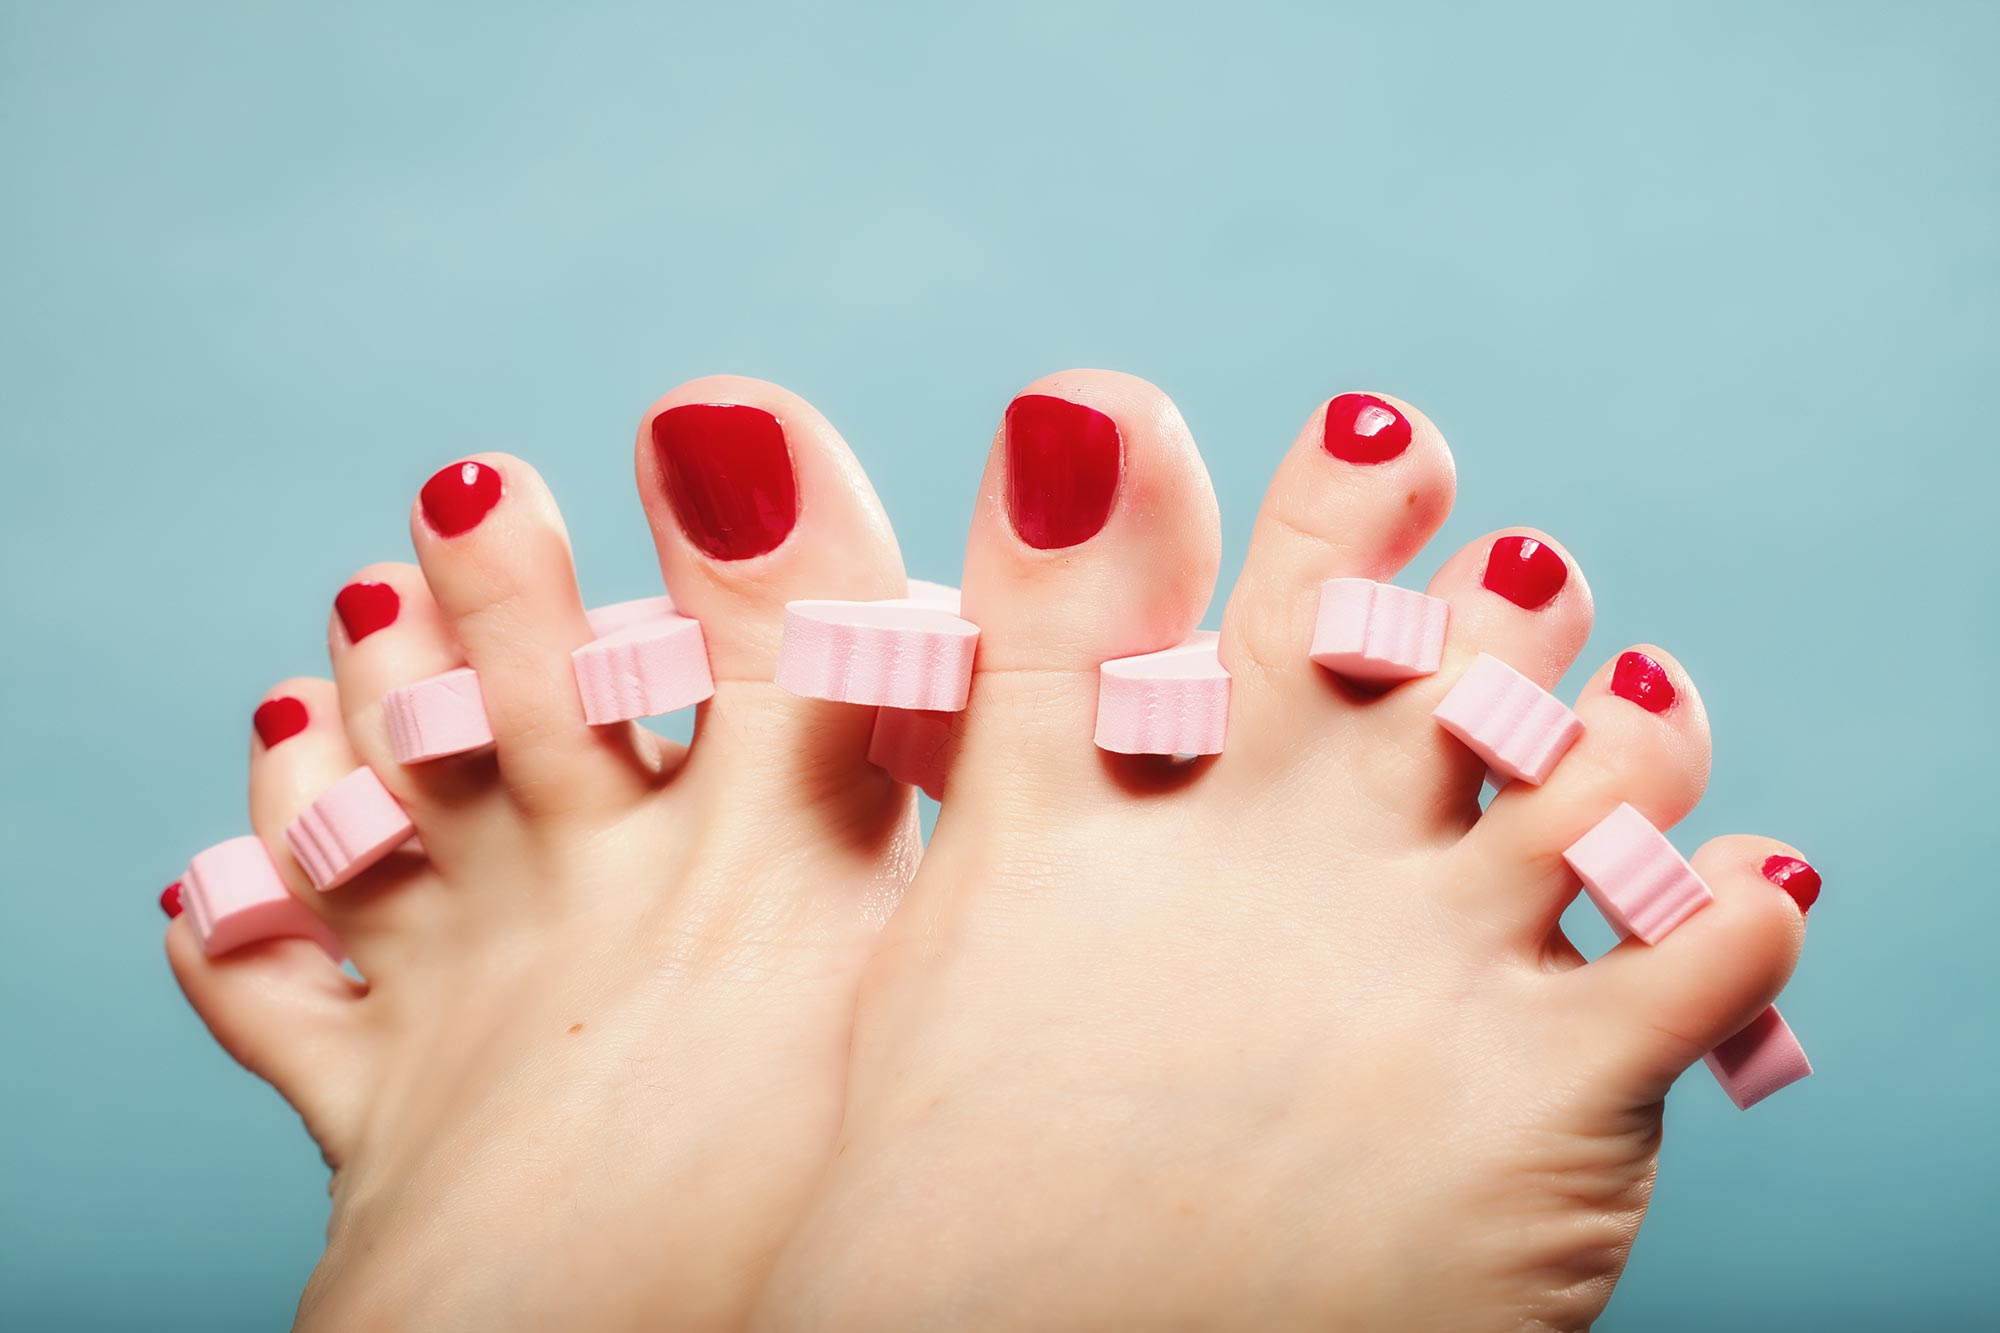 Toenail reconstruction offers a solution for damaged nails